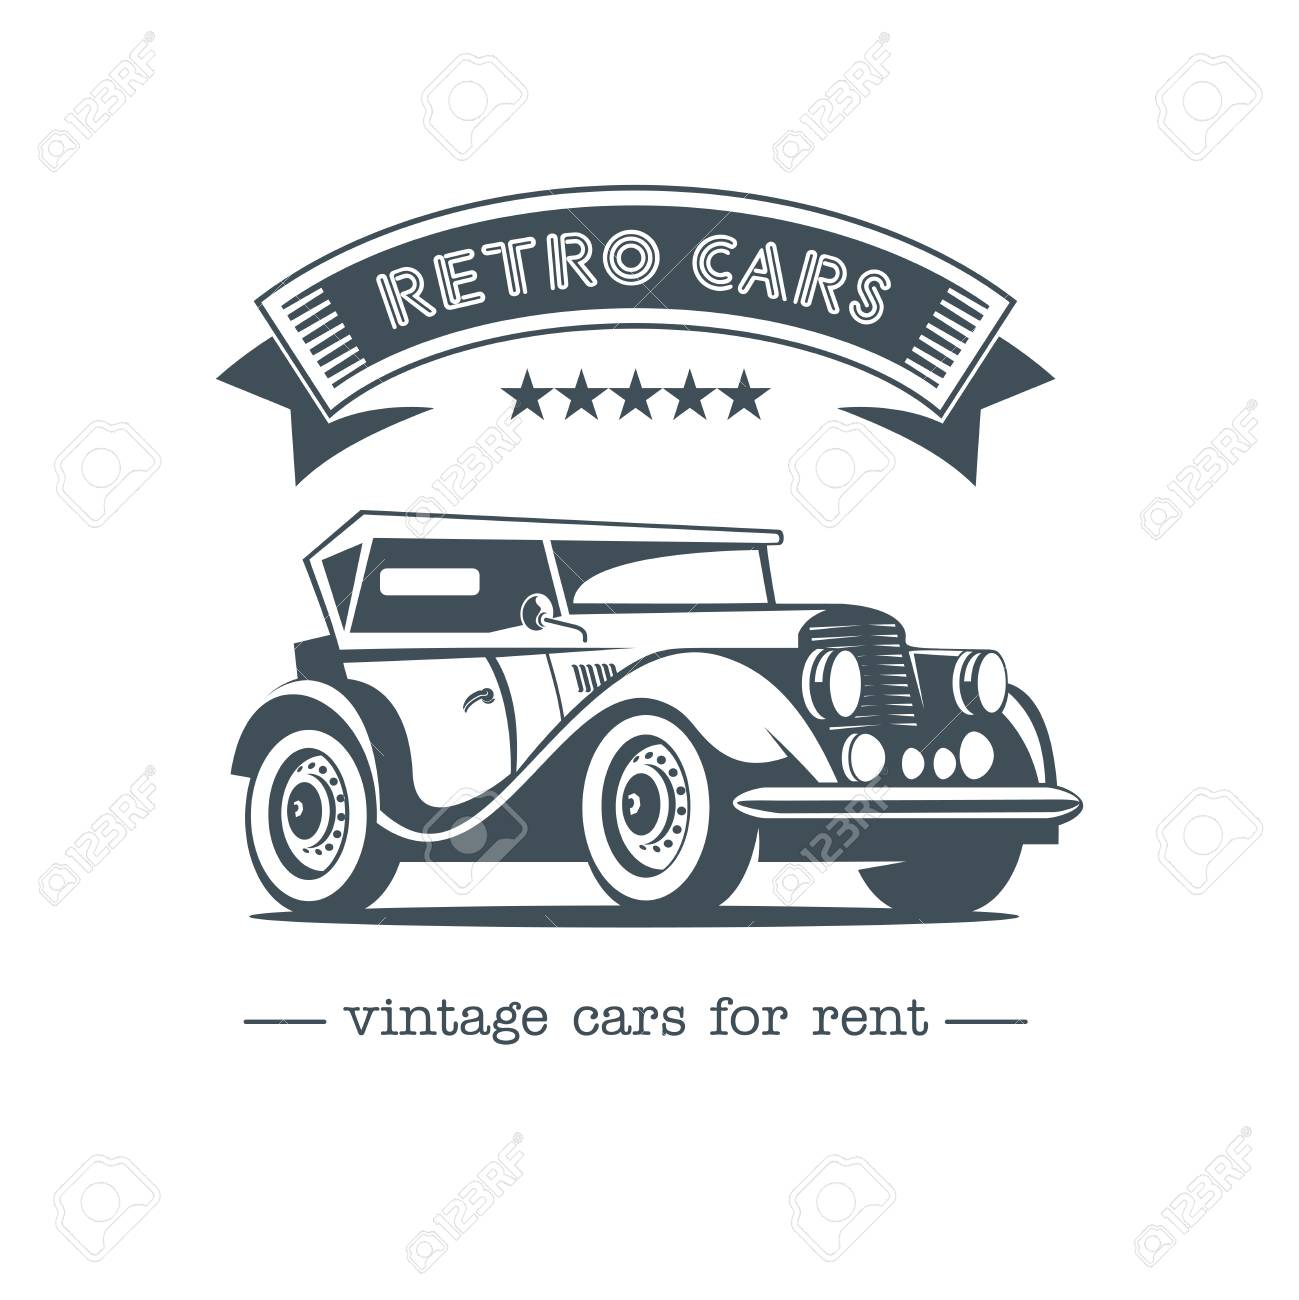 Retro Car Vintage Car Vector Logo. Vintage Cars For Rent. Isolated ...